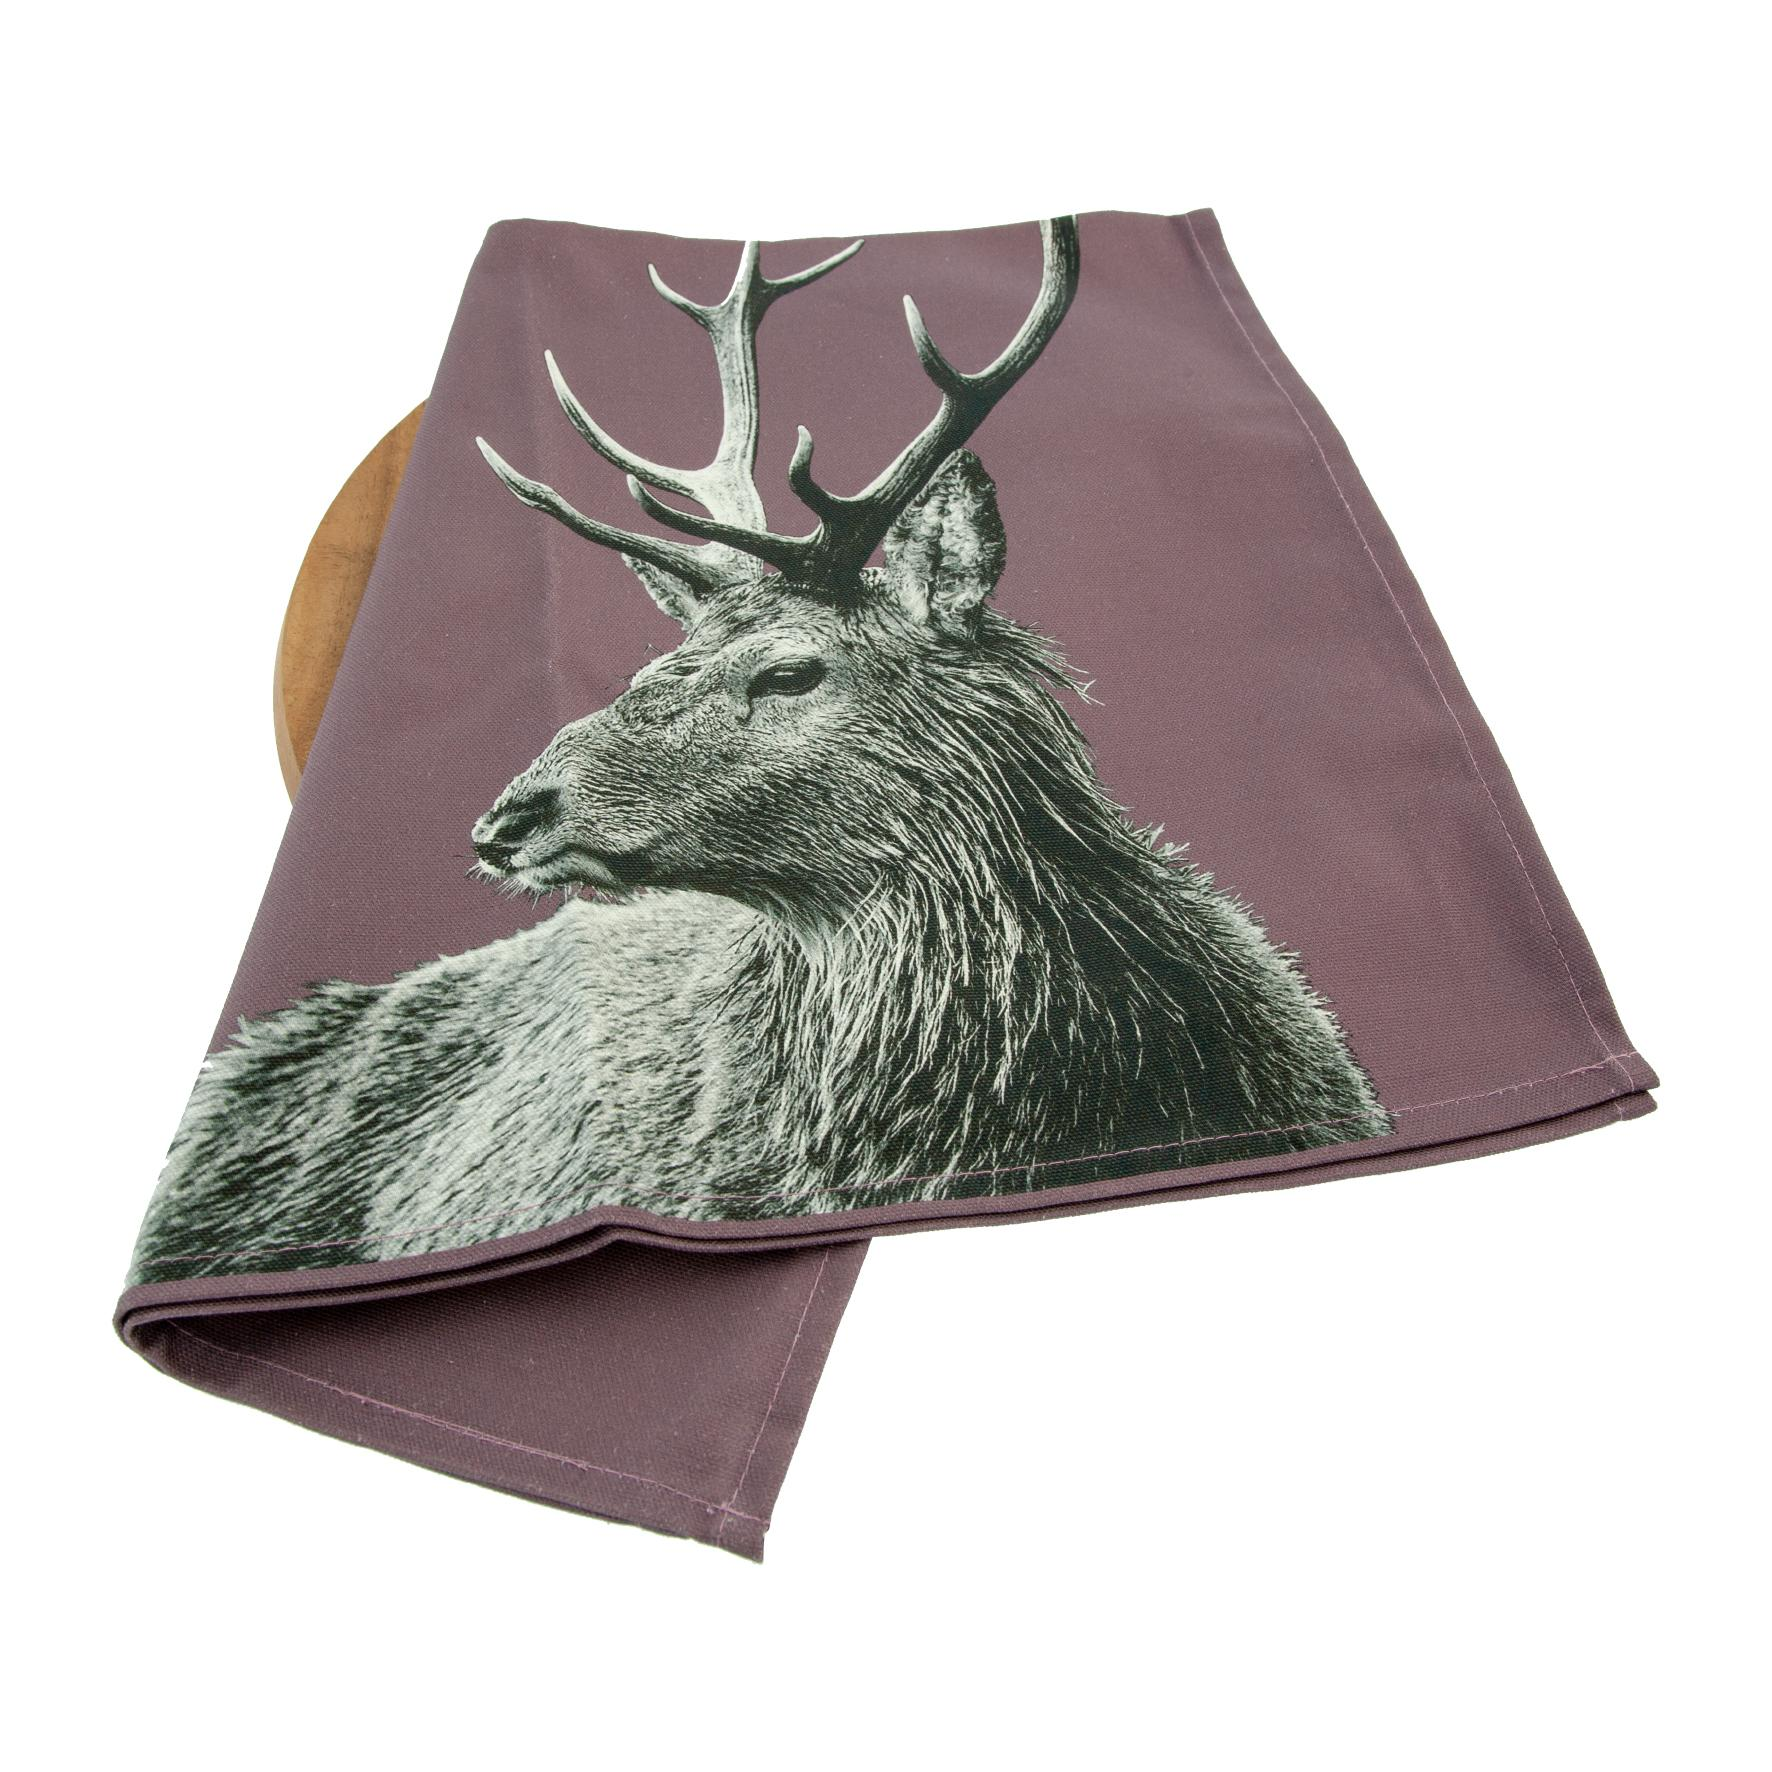 Highland stag tea towel on dusky pink